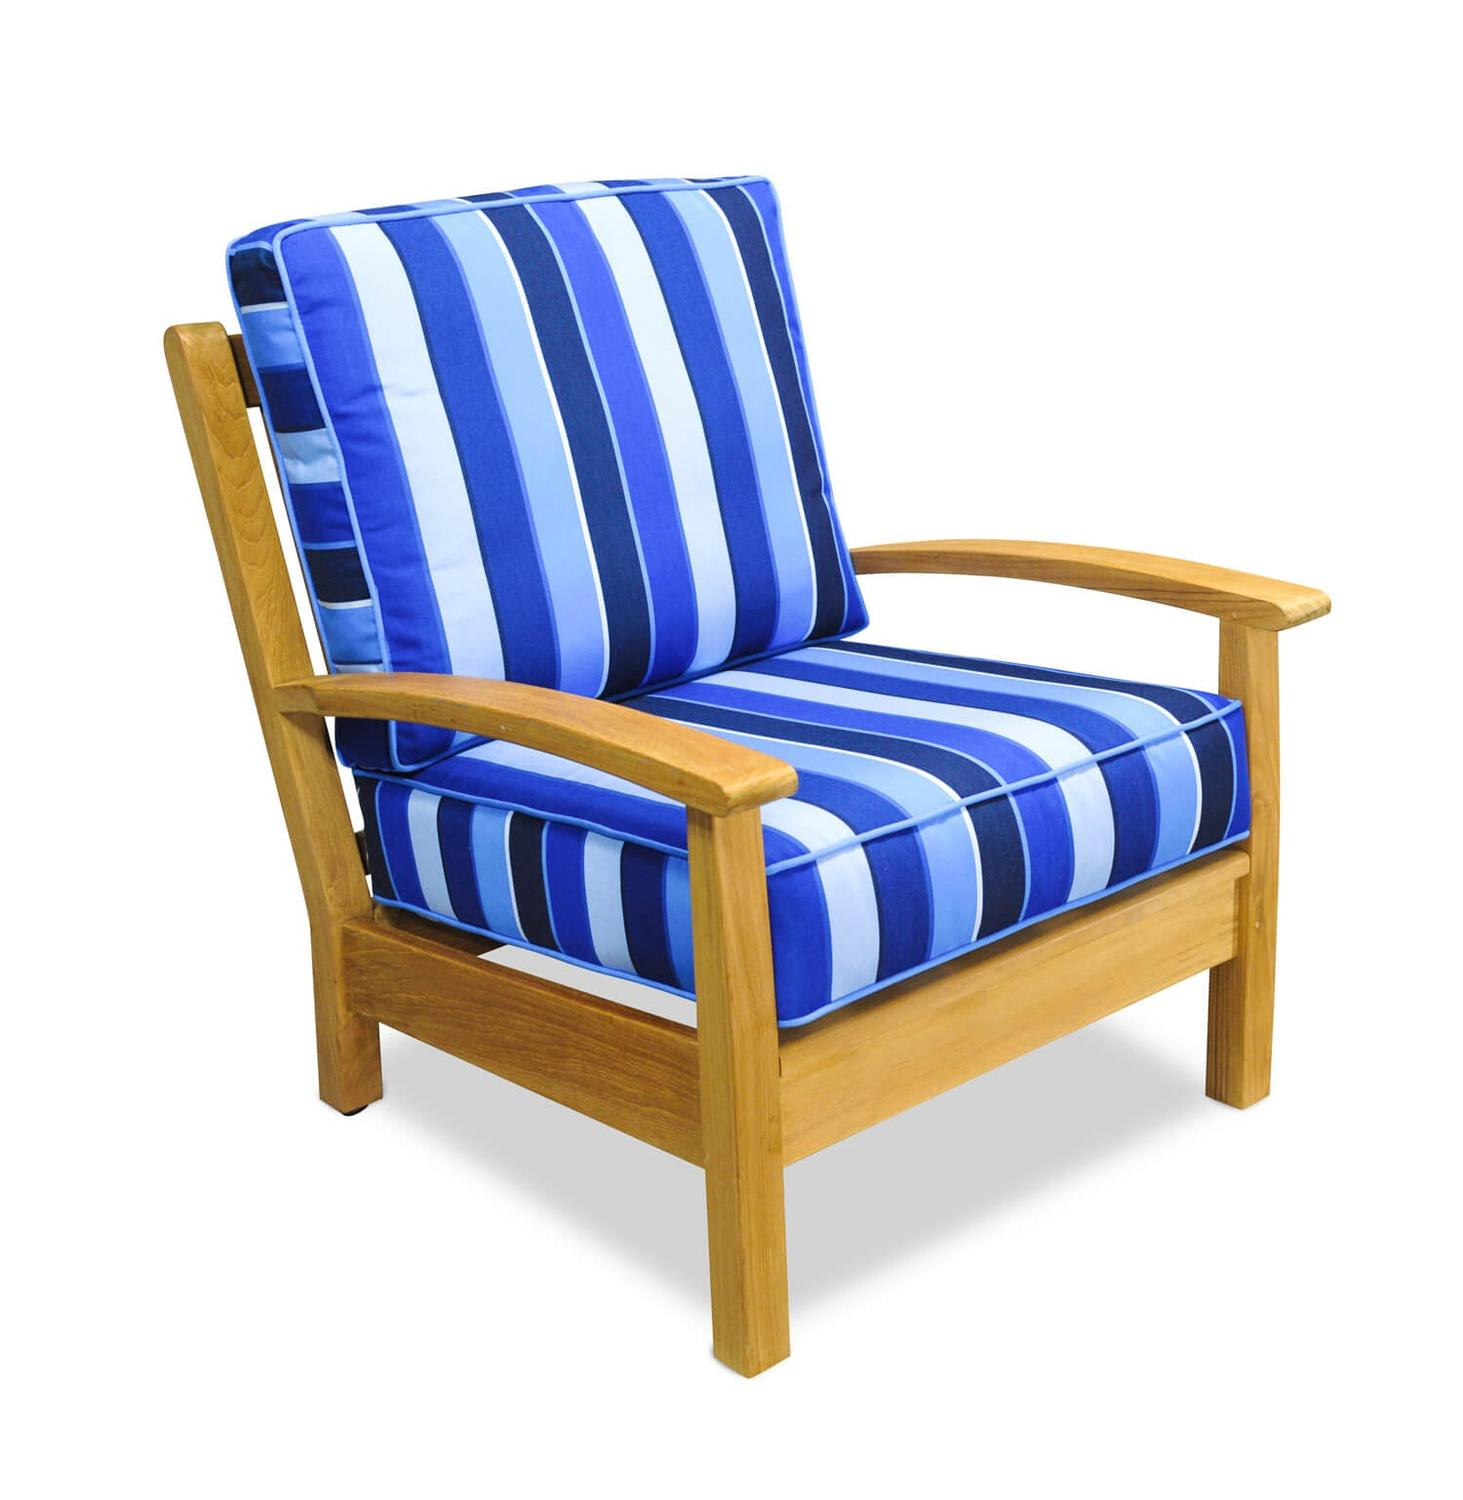 "34"" Natural Teak Deep Seating Outdoor Patio Lounge Chair with Cobalt Striped Cushions"